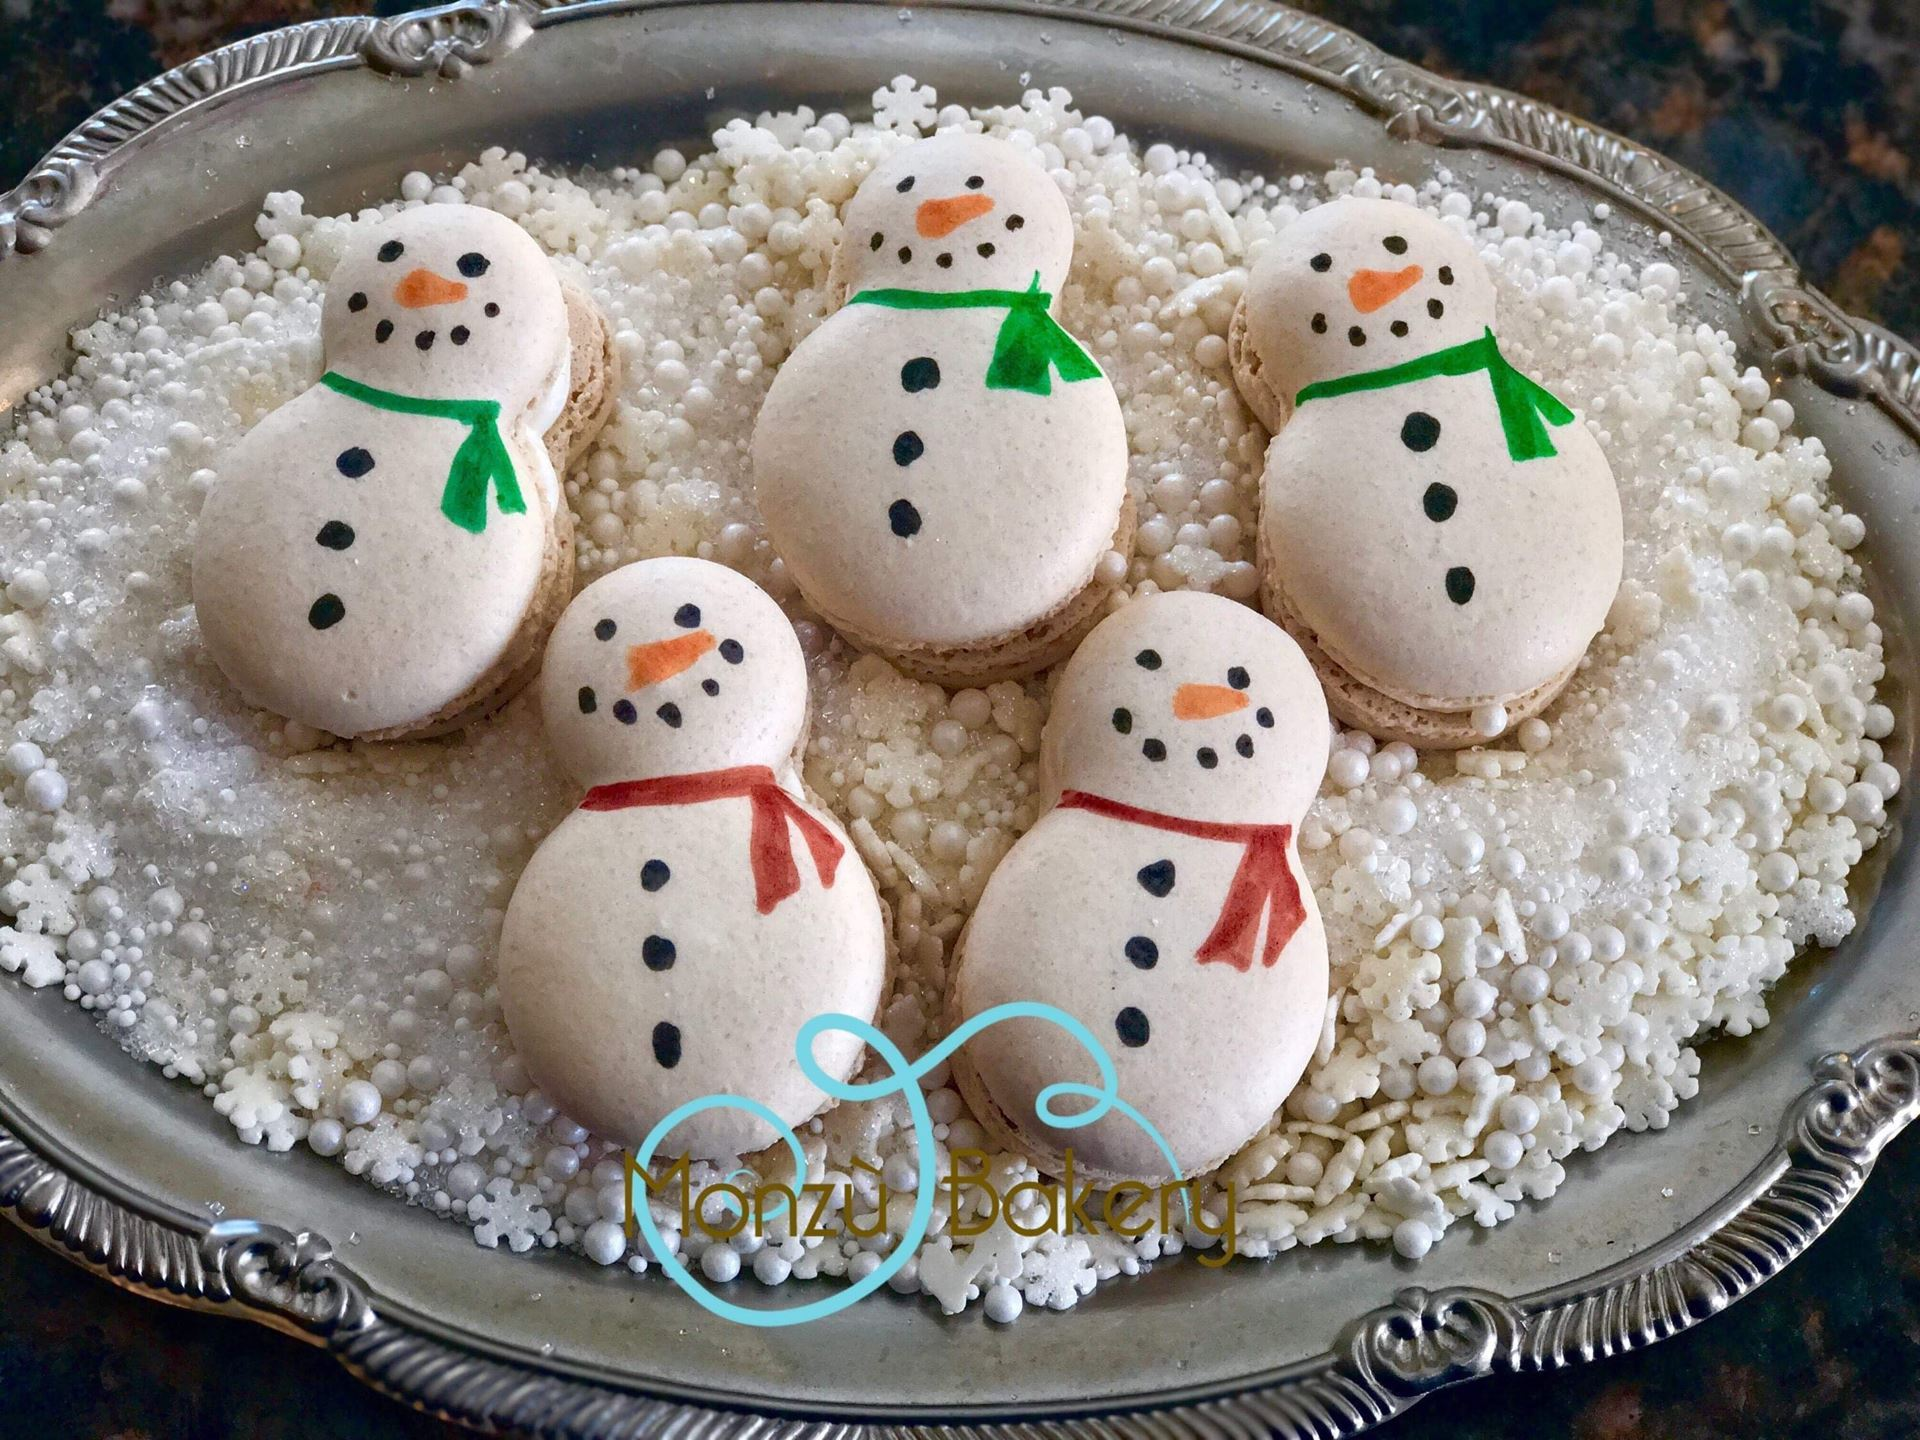 Christmas Macarons.Wba Wisconsin Bakers Association On The Third Day Of